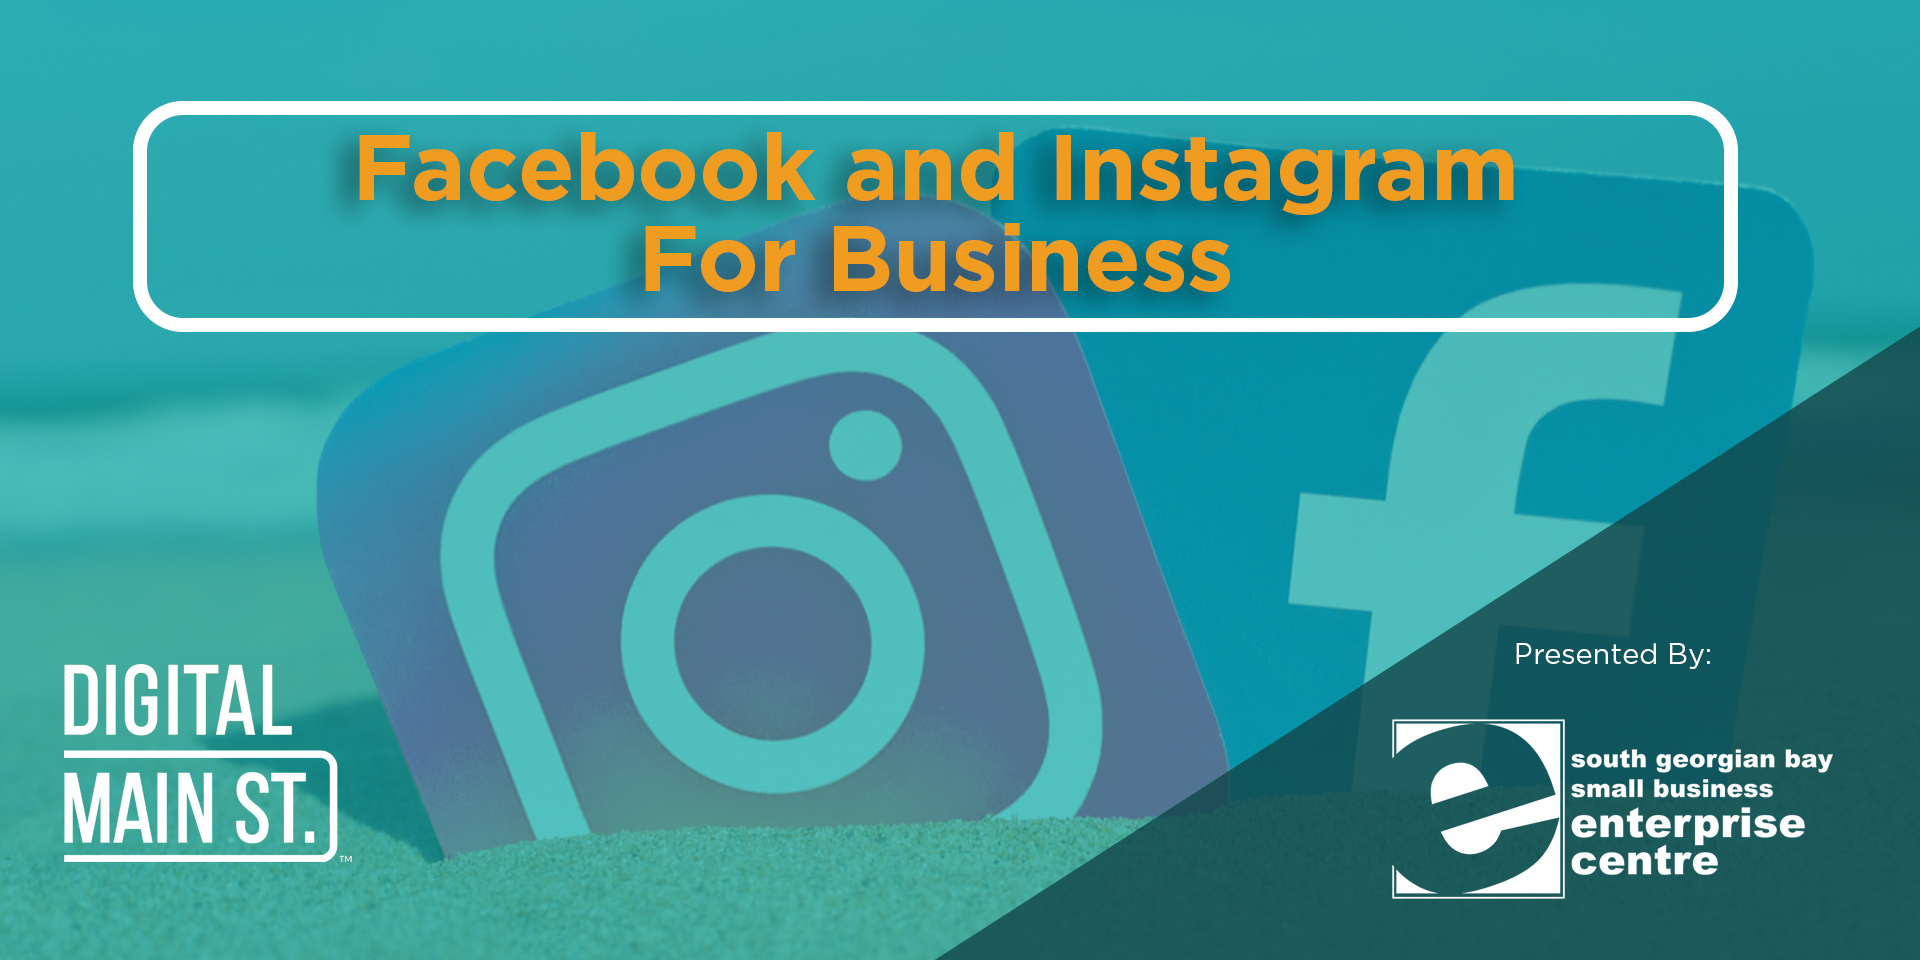 Access to webinar on Facebook & Instagram for Business